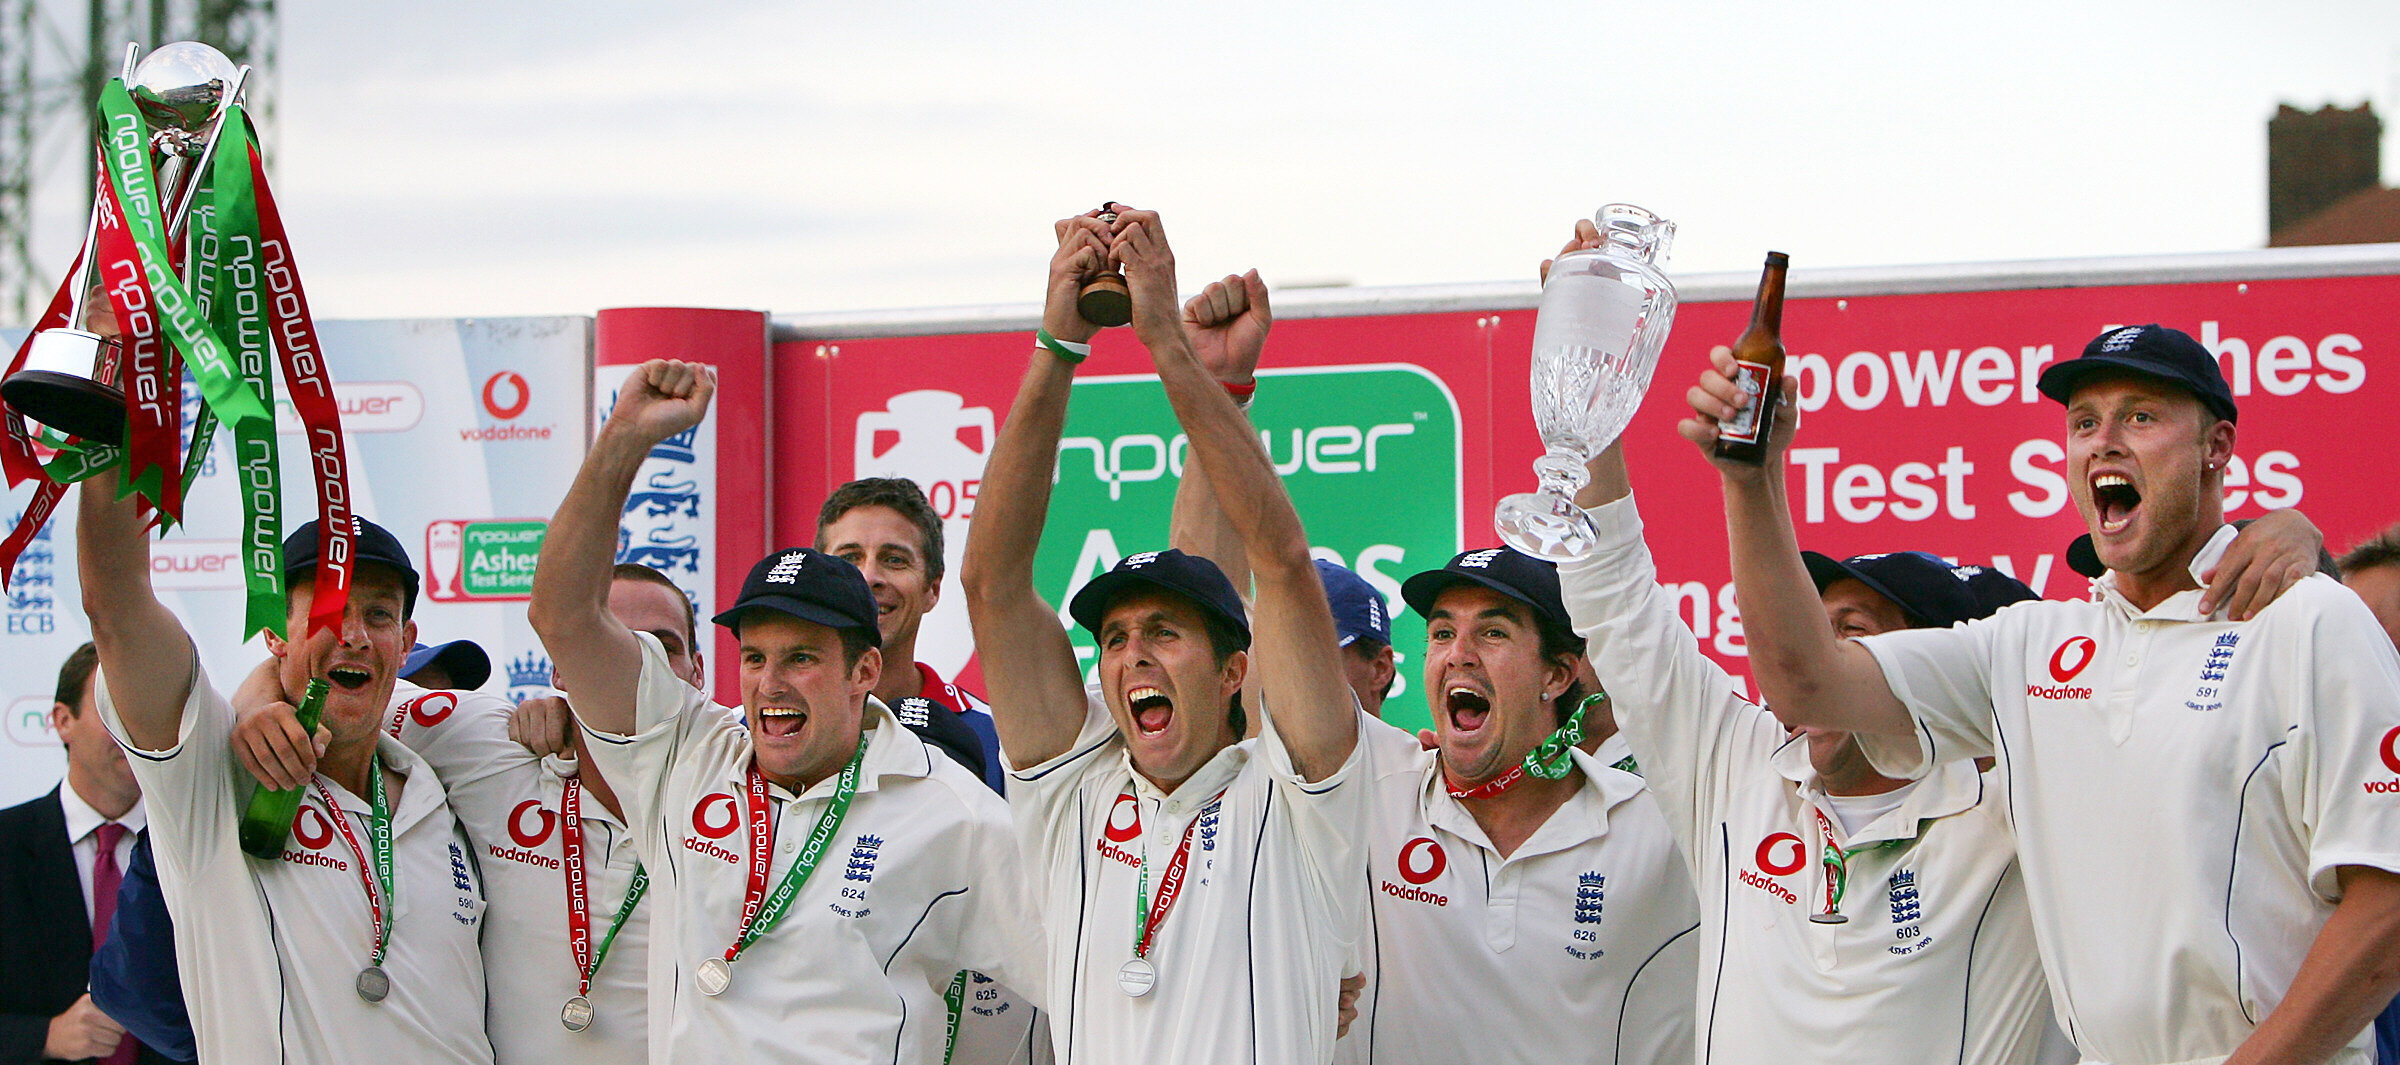 A young leader, Michael Vaughan, celebrates with his team mates after beating one of the best cricket teams to ever play the game in 2005.